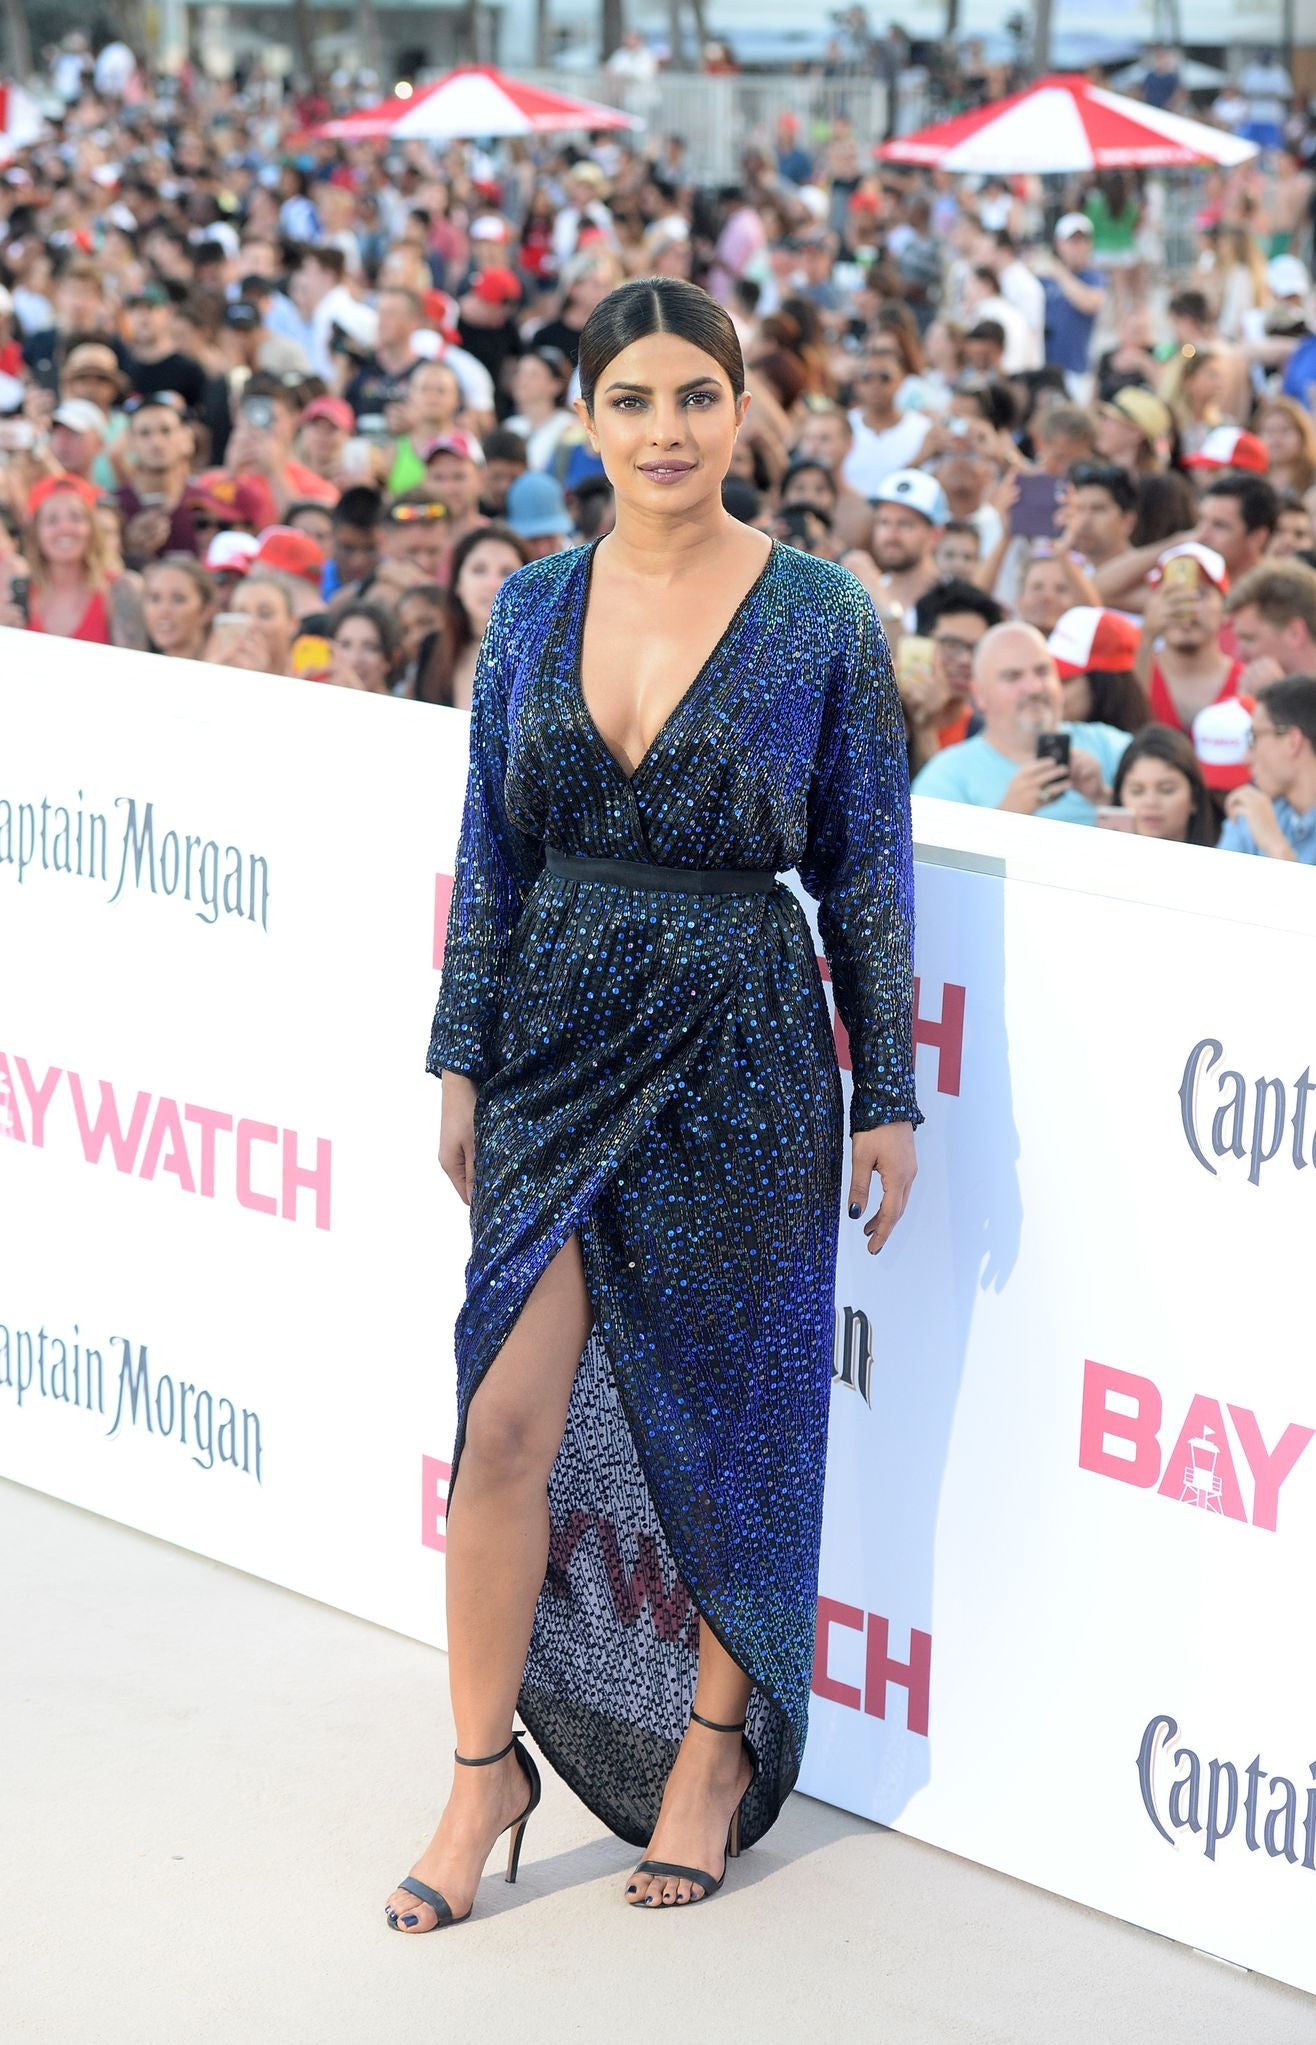 It was the world premiere of 'Baywatch' which happened yesterday in Miami and the iconic Pee Cee was all dressed-up like an absolute show-stealer. But suddenly, a moment of surprise came in while Priyanka was addressing the media.